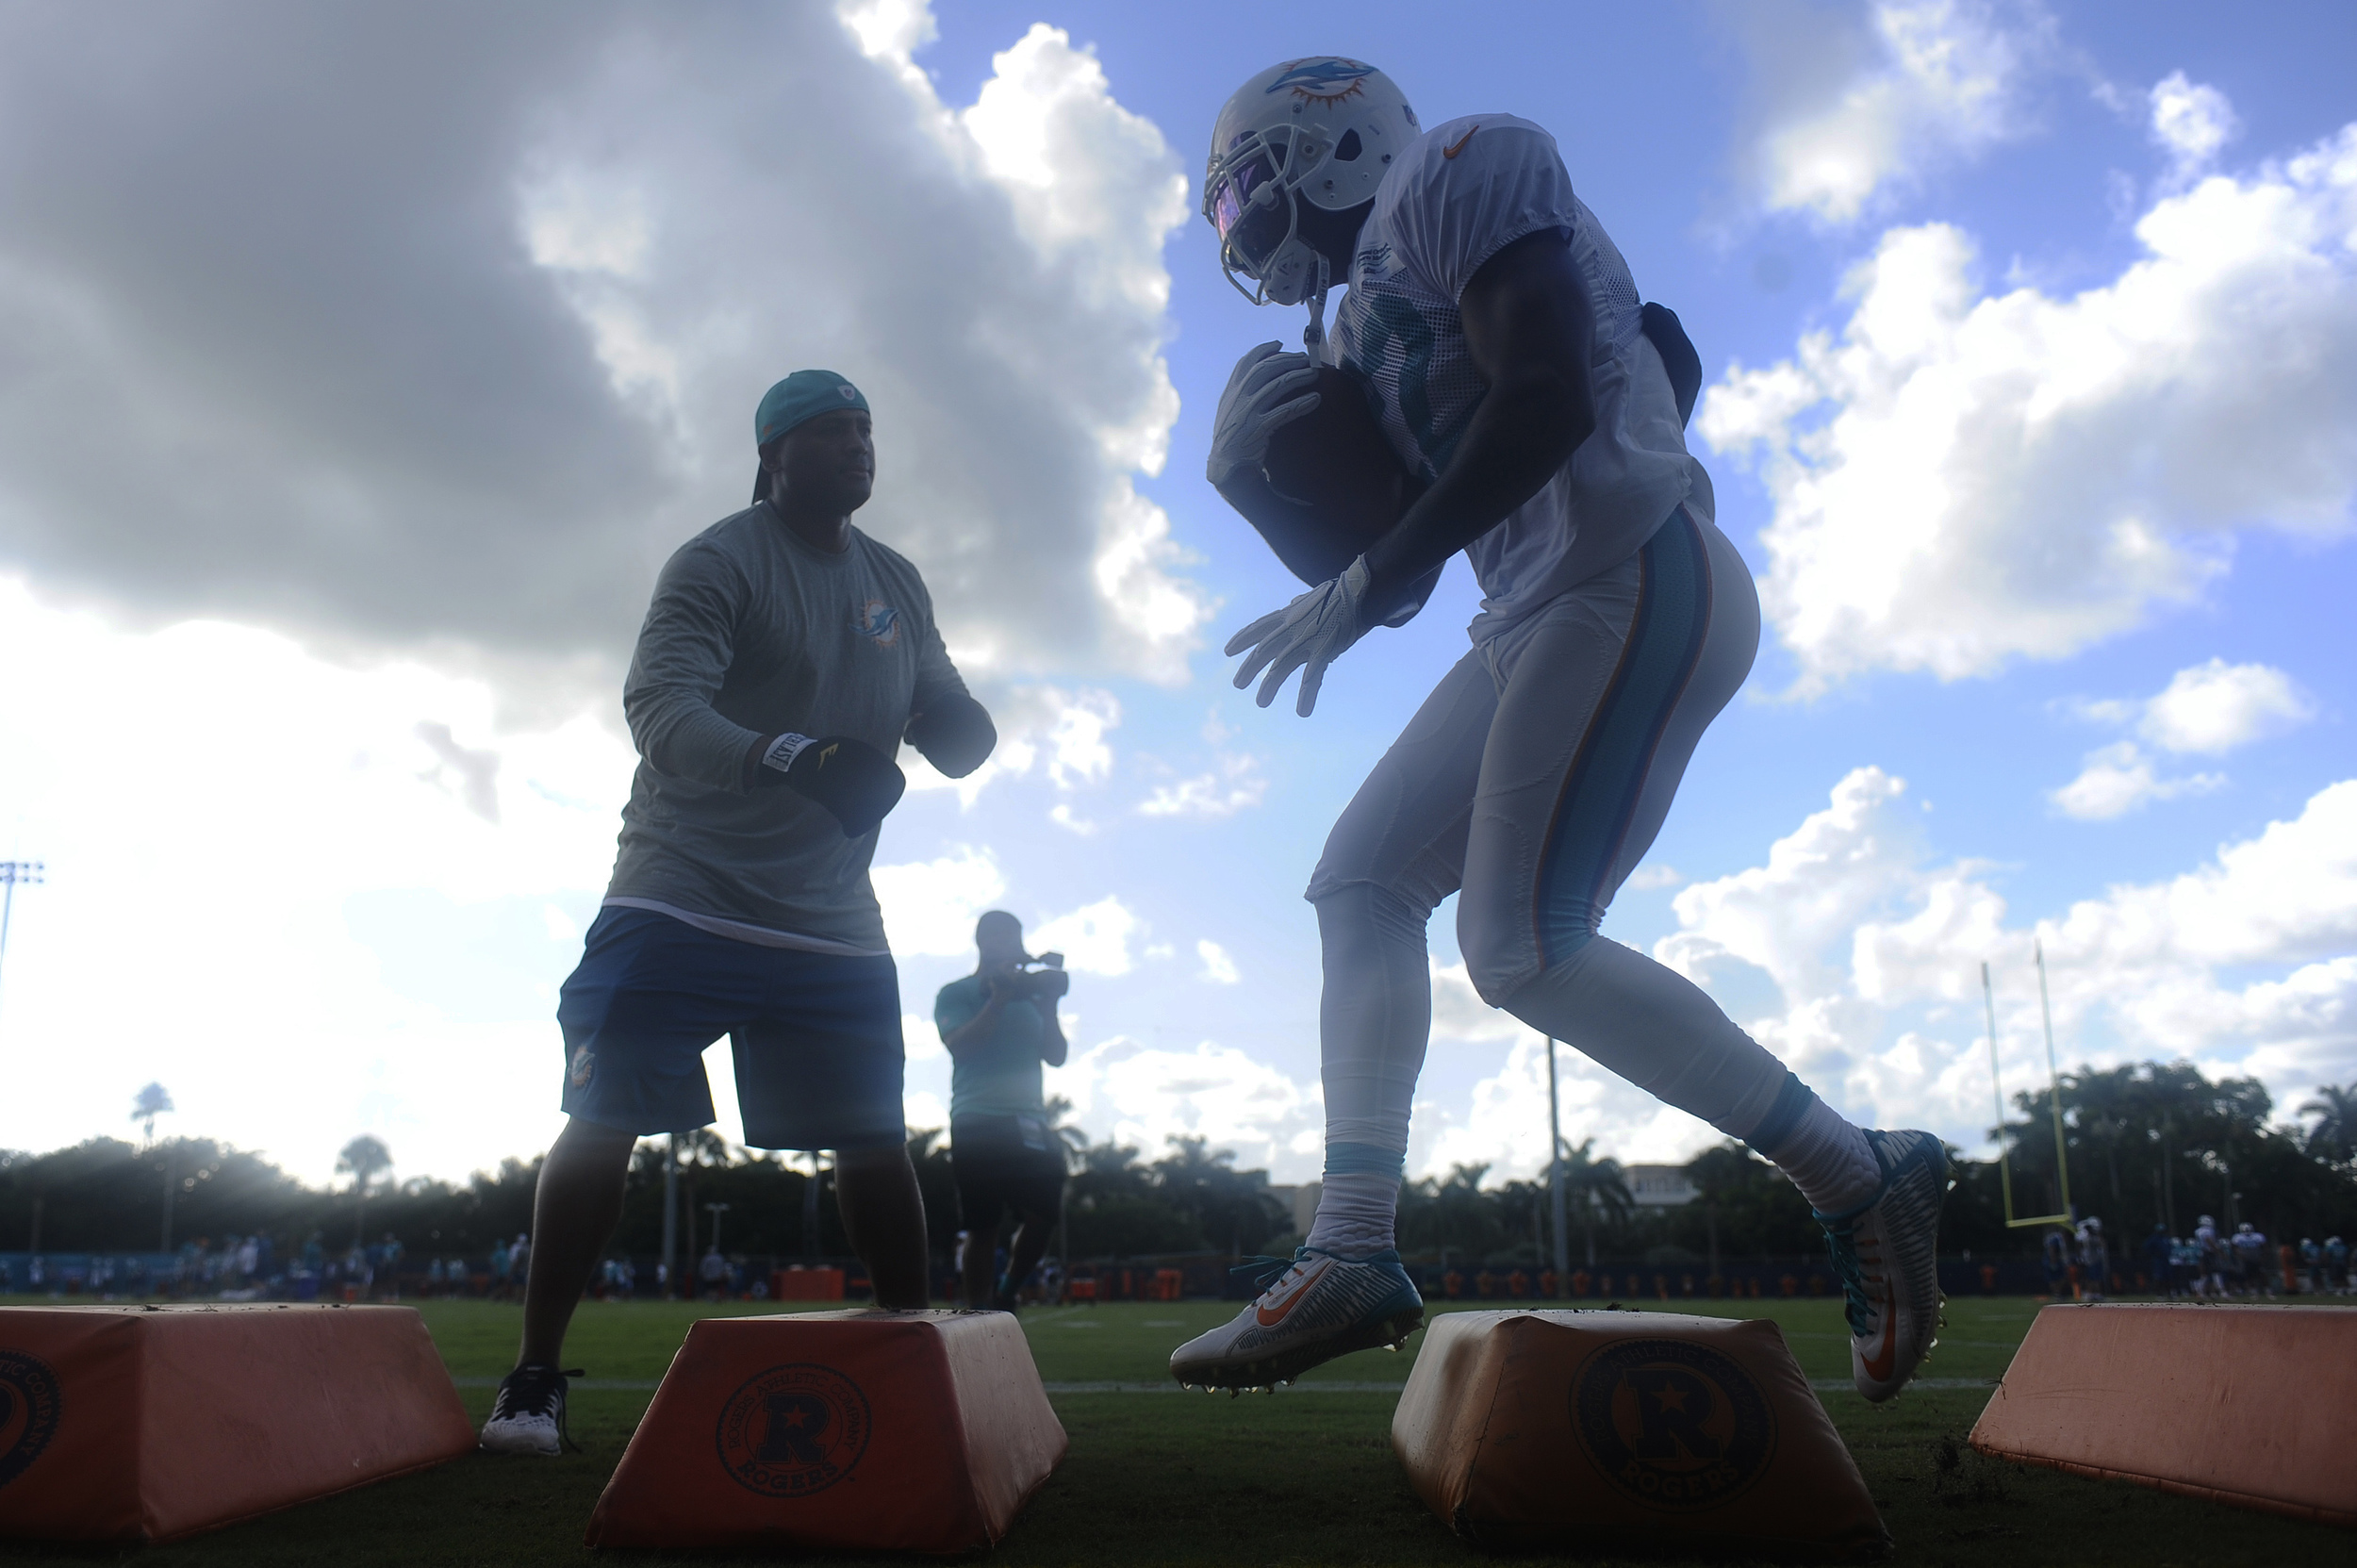 Miami Dolphins running back Isaiah Pead goes through drills during day three of the Miami Dolphins training camp held at the Dolphins Training Facility on Sunday, July 31, 2016.